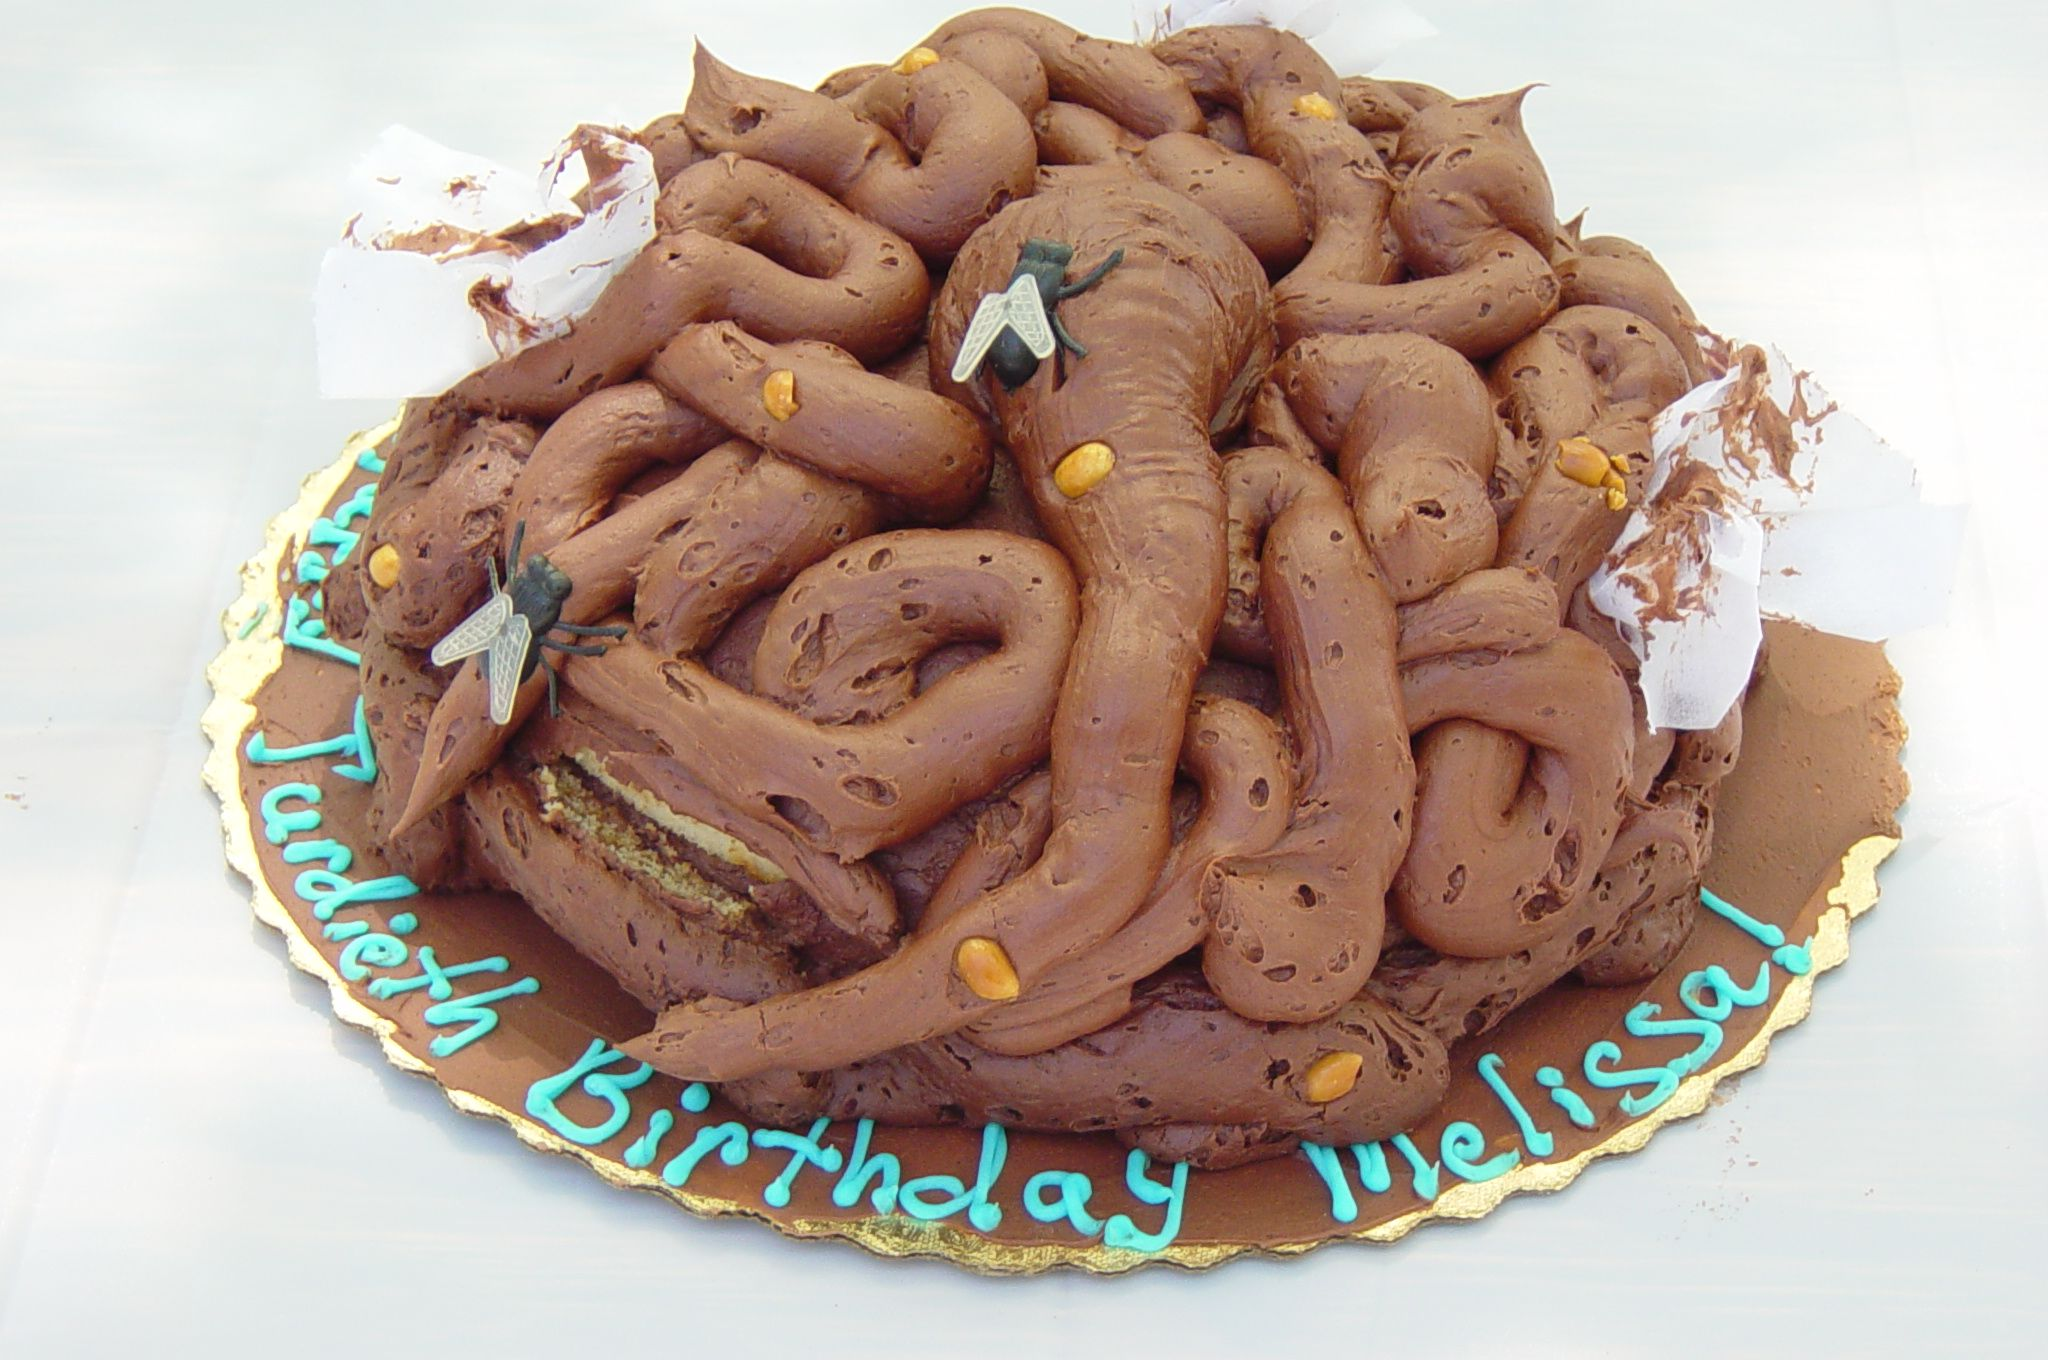 Ewww grossest cake ever - terd, crap, shit cake with flies and toilet paper too! Happy birthday?